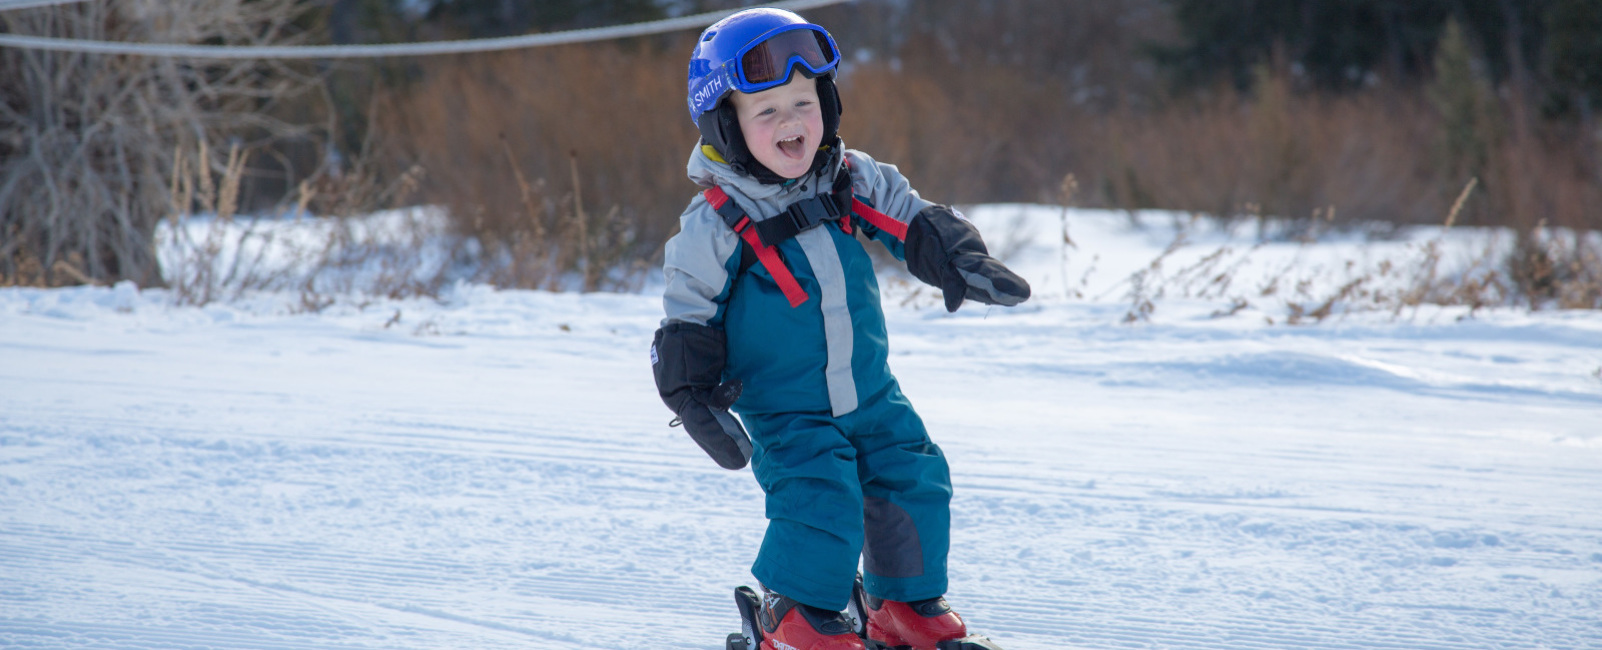 Skiing with Kids: What to Know Before You Go